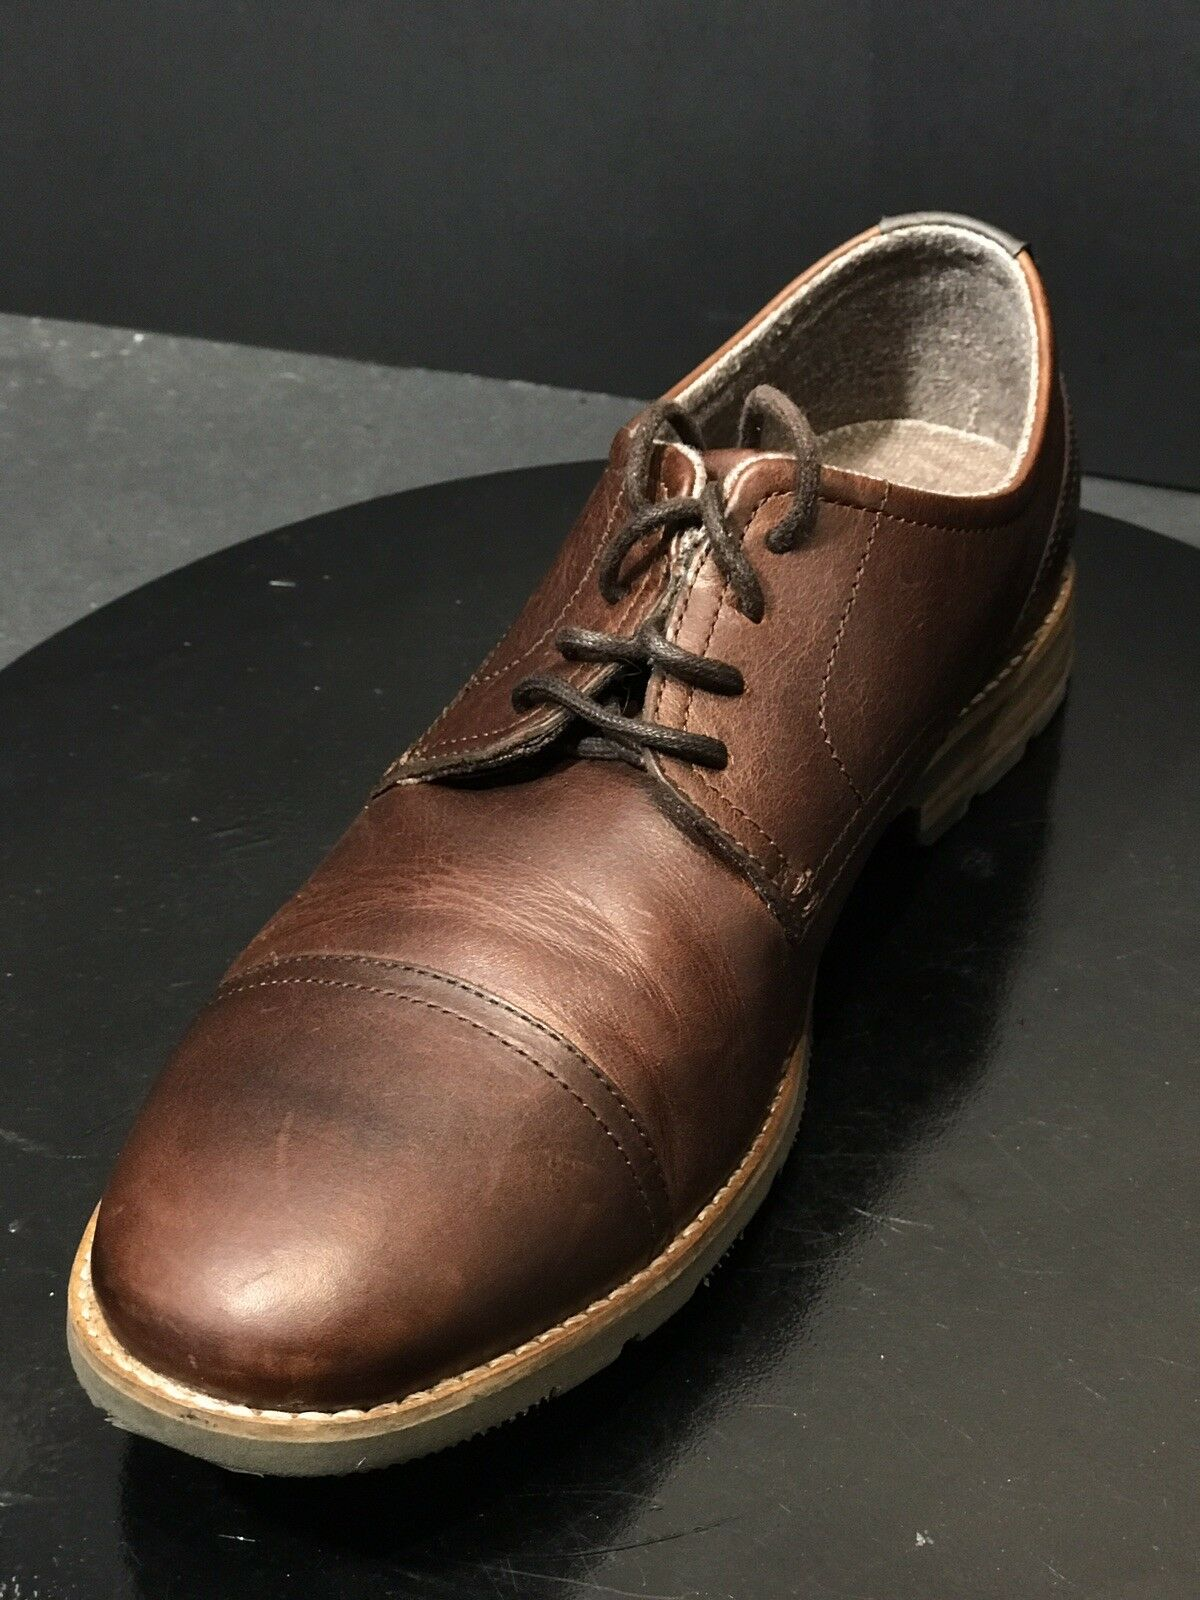 ROCKPORT MEN'S LEDGE HILL 2 CAP OXFORD BROWN LEATHER LACE UP SHOES SIZE US 10 M